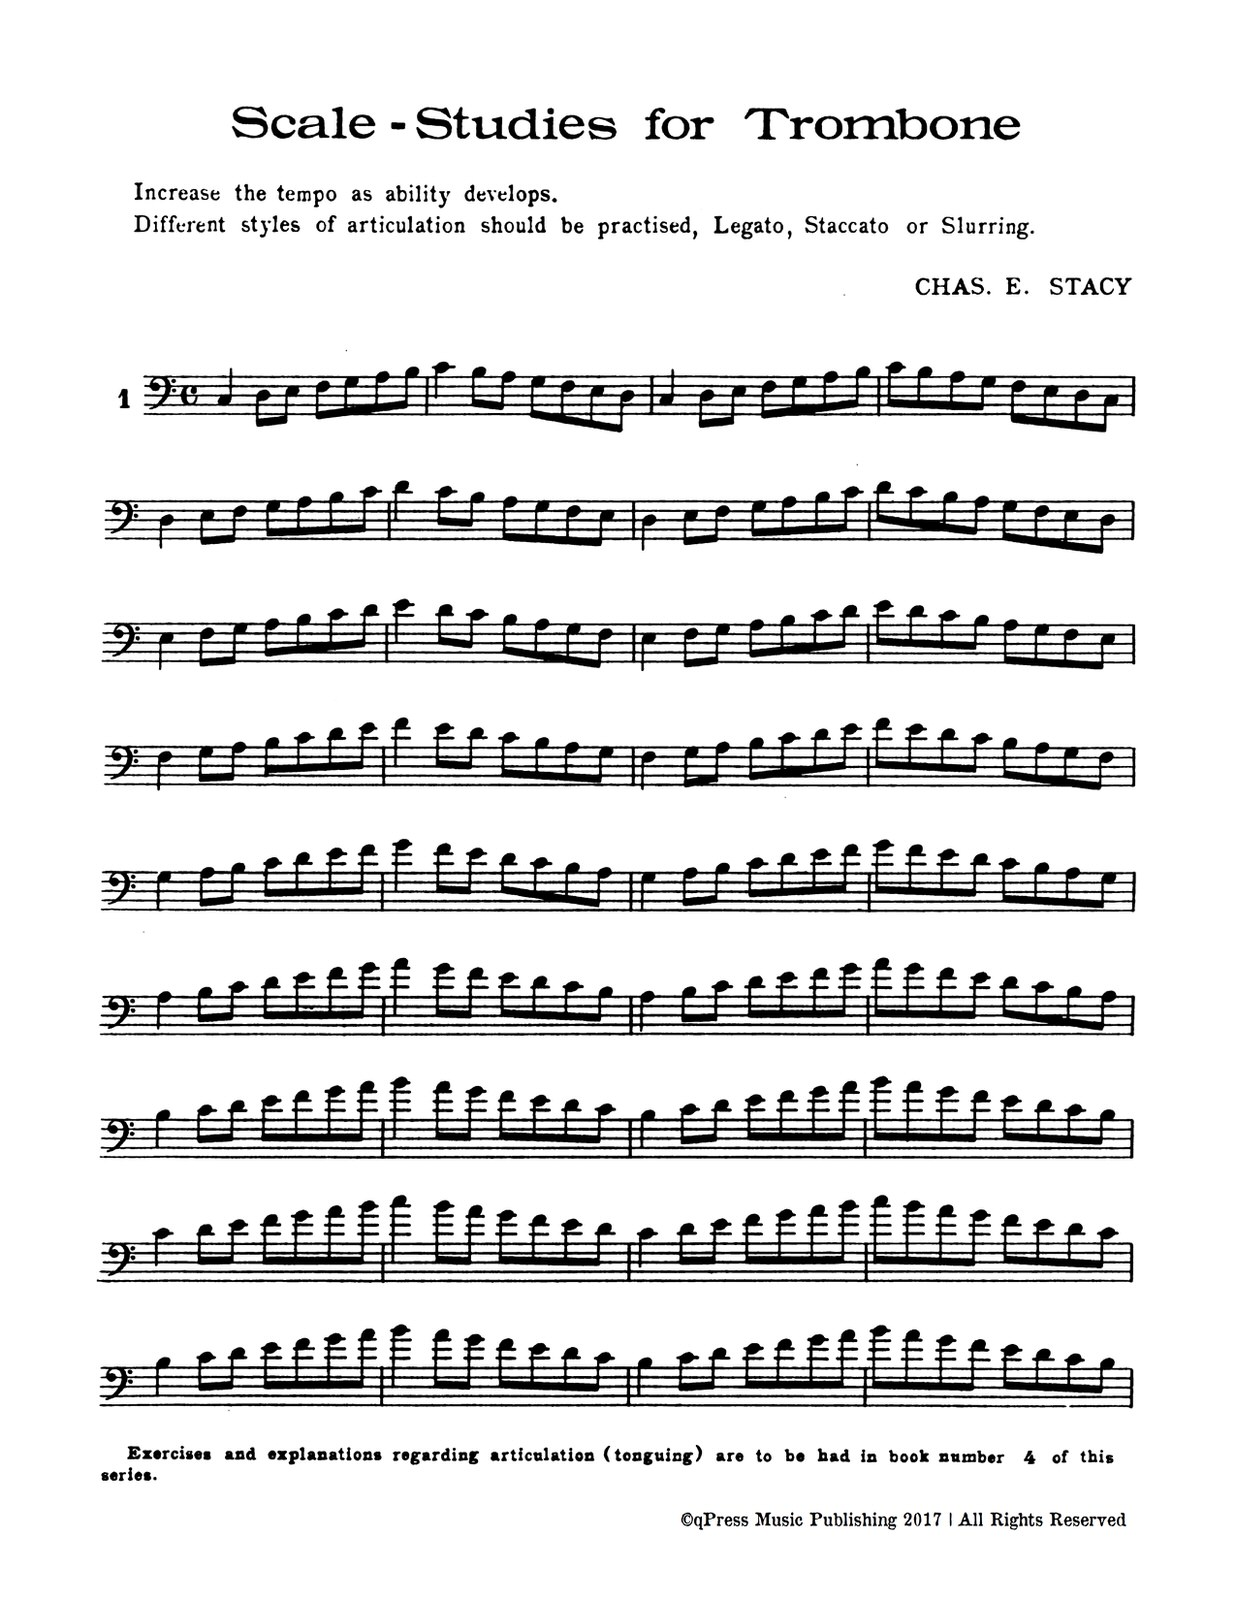 Stacy, Stacy's successful studies for trombone-p18